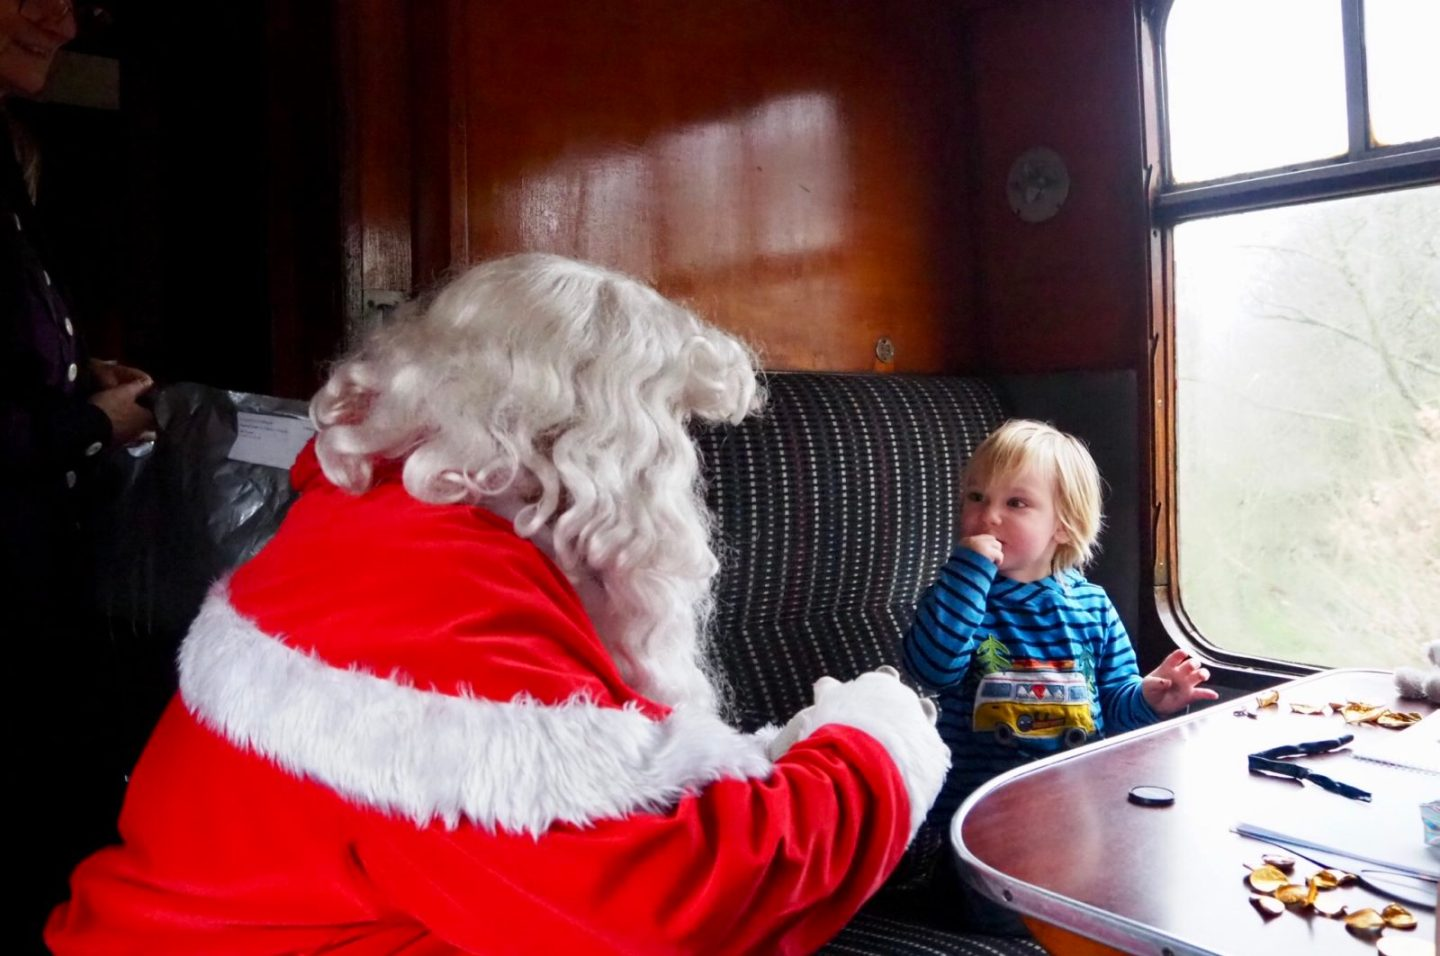 Churnet Valley Railway Santa and Steam: Review